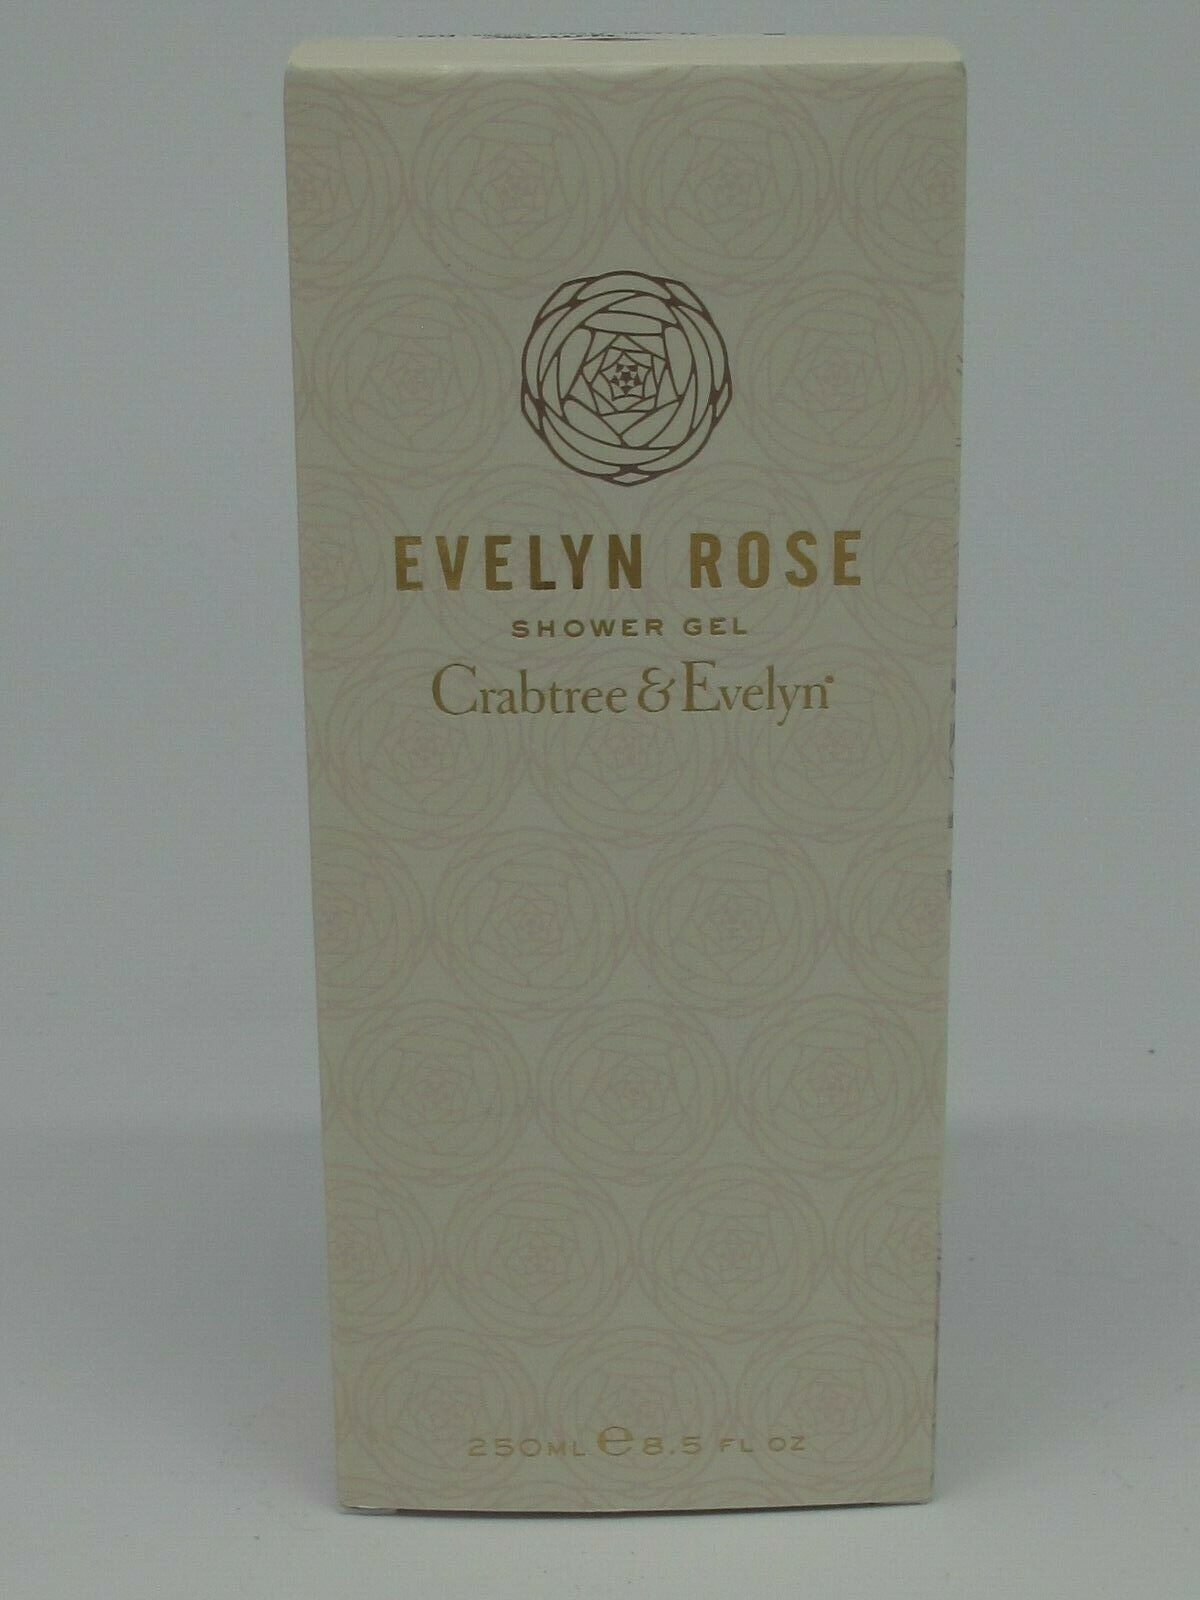 Primary image for Crabtree Evelyn Evelyn Rose Shower Gel 250 ml e 8.5 fl oz NIB